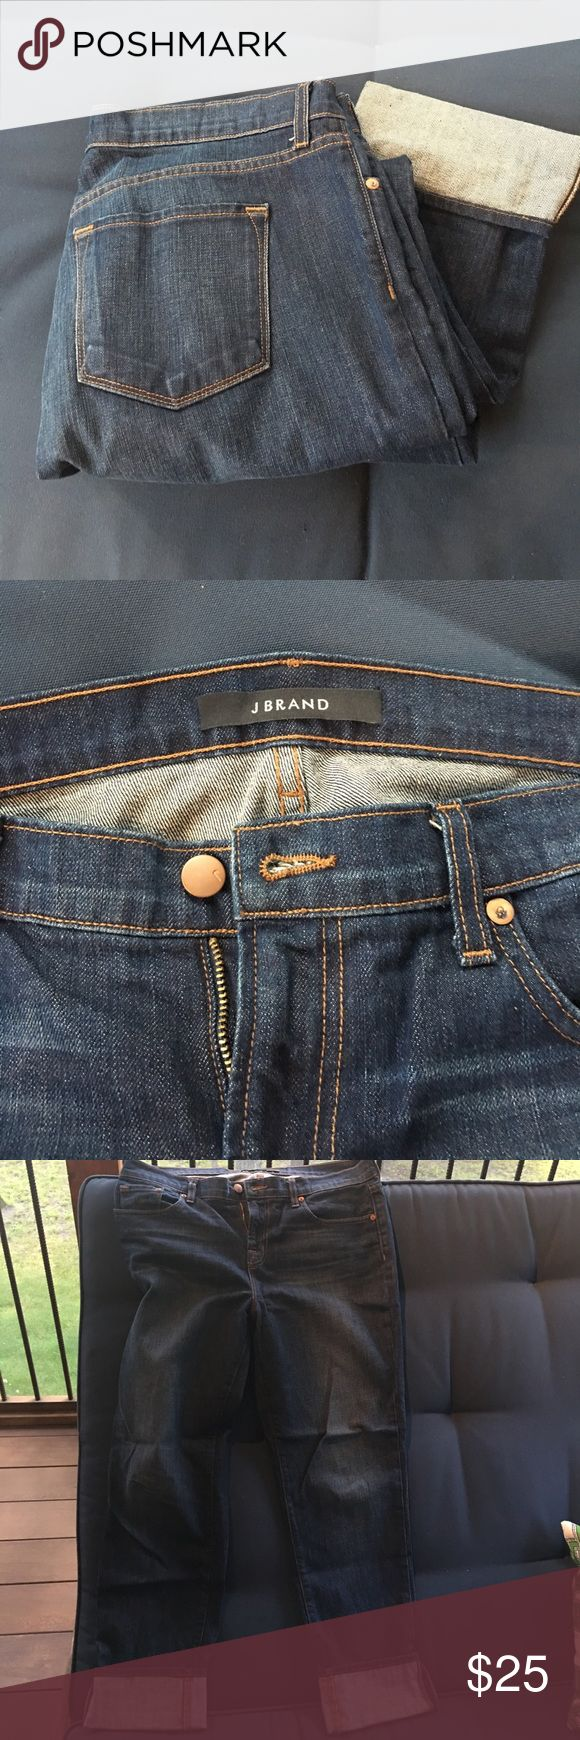 J Brand jeans J Brand jeans, dark wash, size 30, lightly used J Brand Jeans Straight Leg